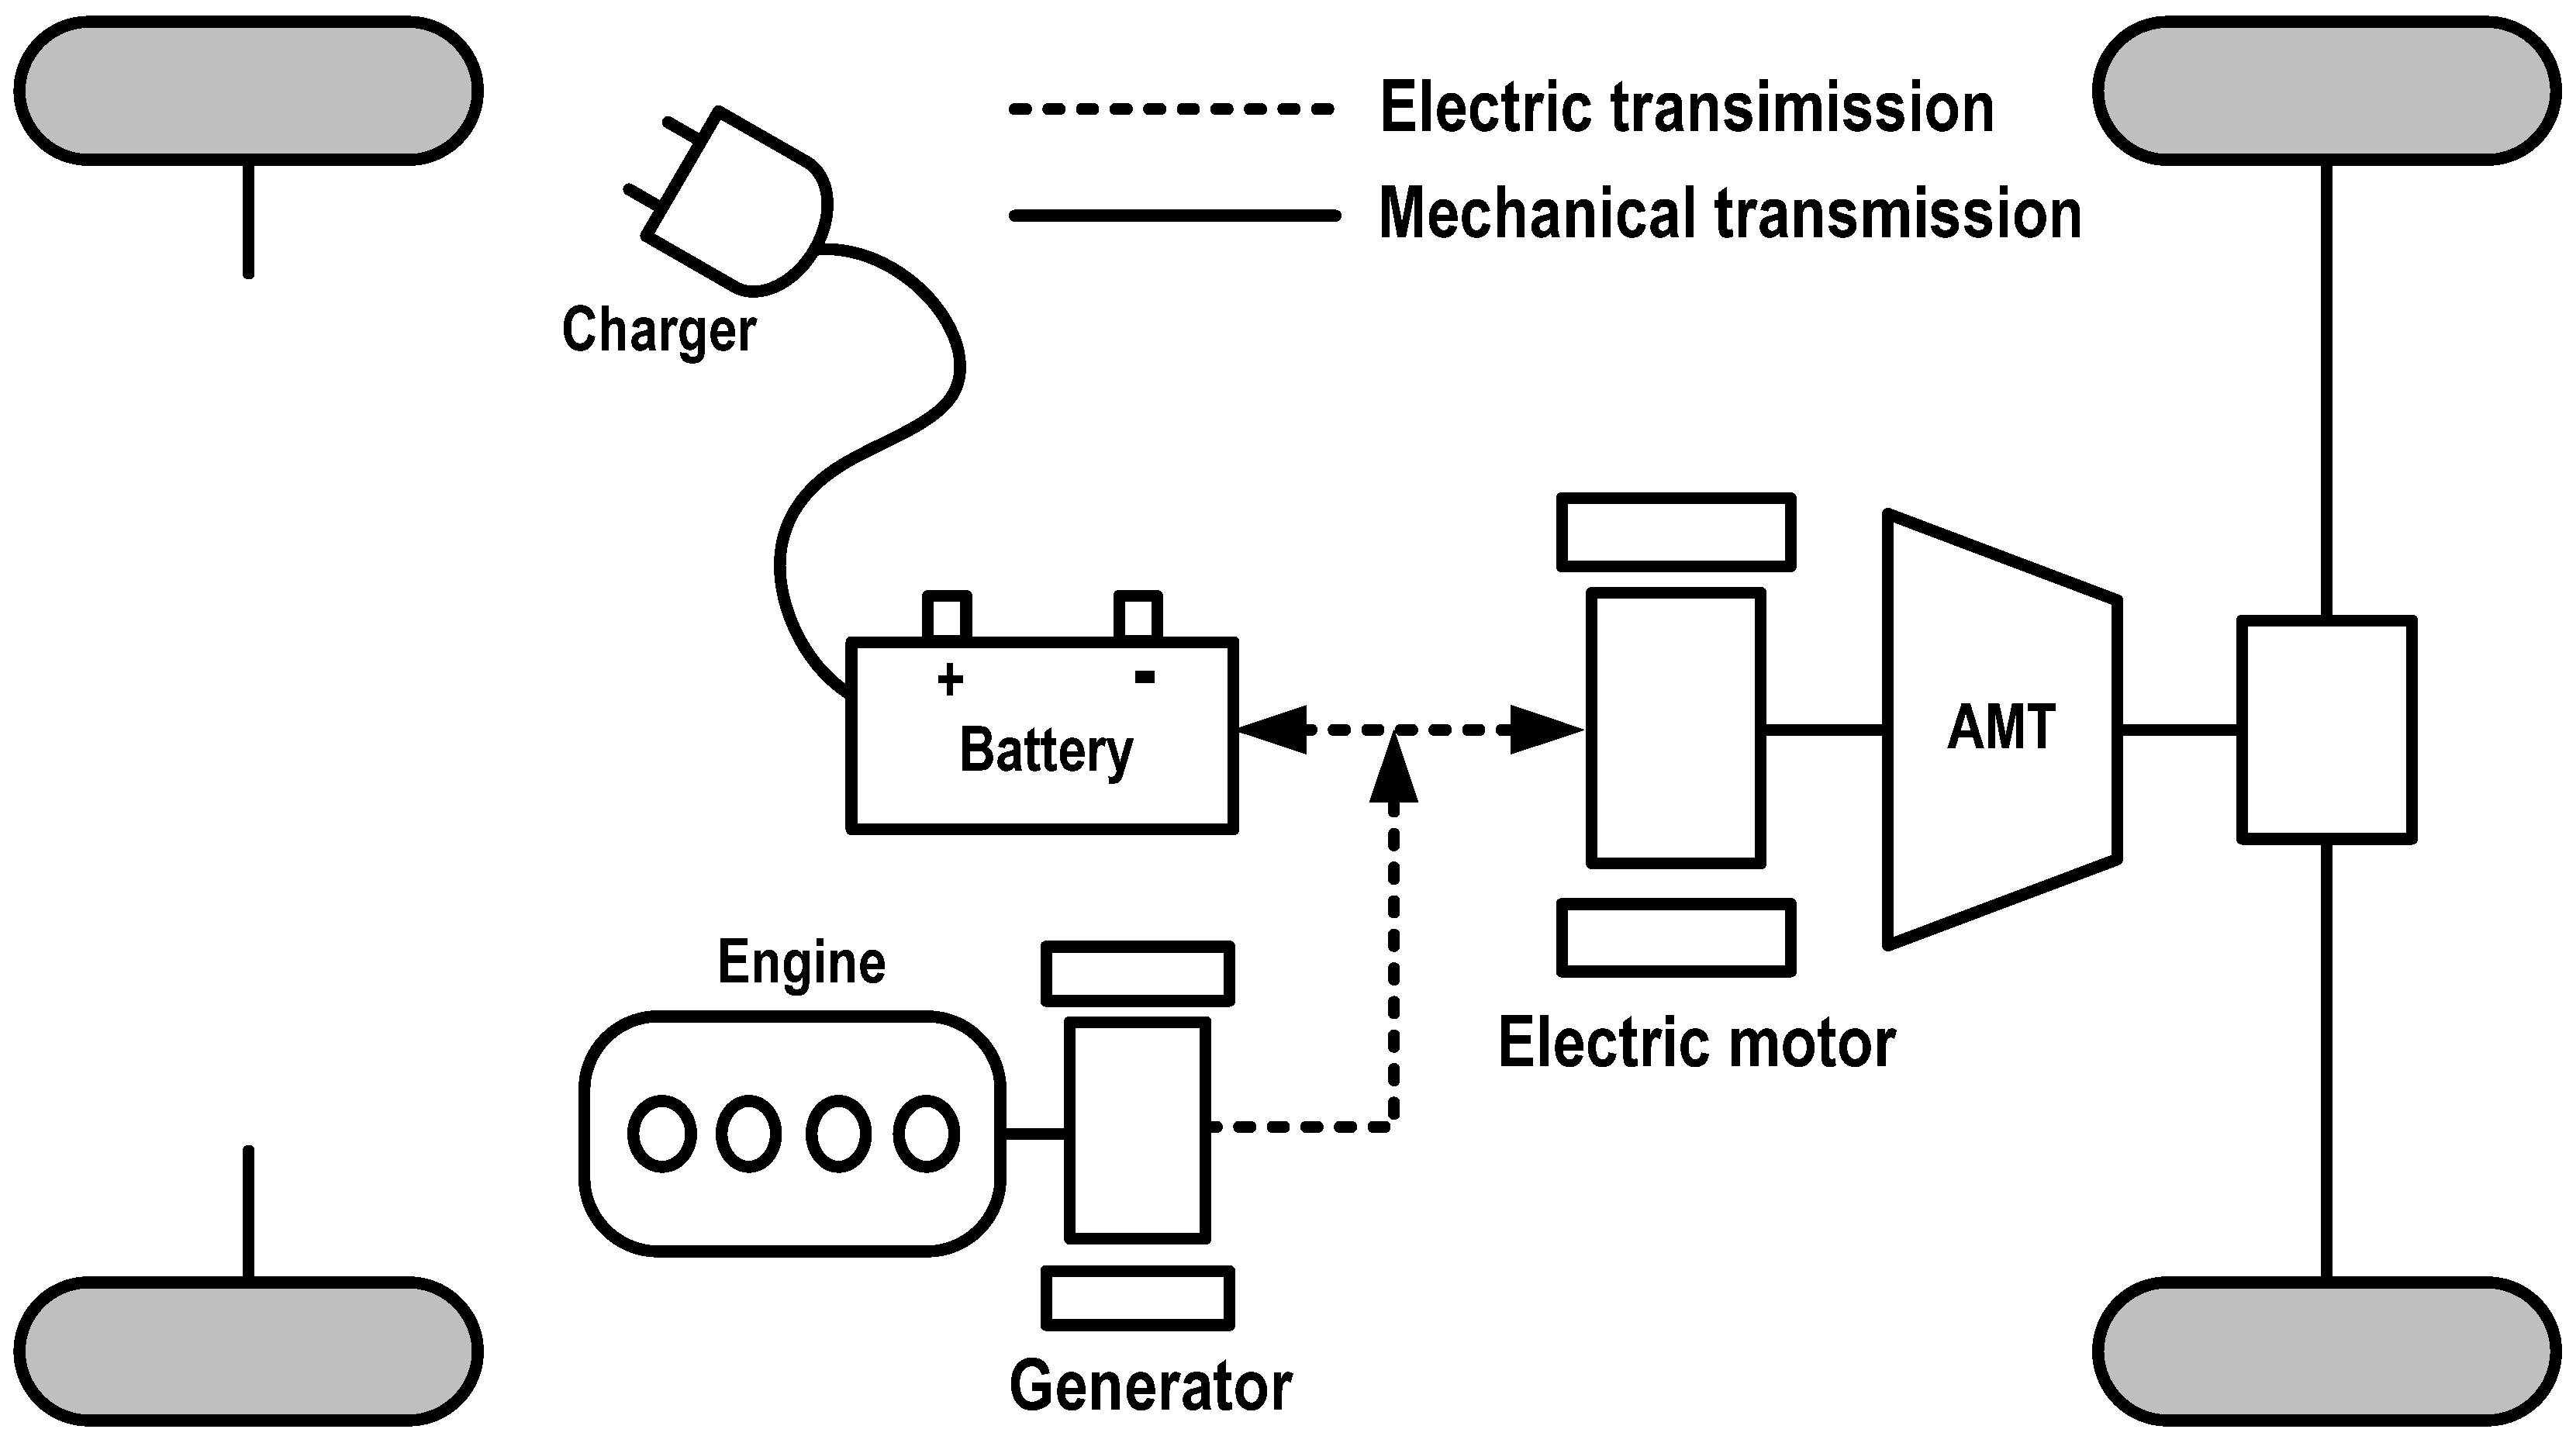 Energies | Free Full-Text | Optimal Energy Management Strategy of a on electrical diagram, engine assembly diagram, electric installation, electric wiring diagram, electric switch diagram, electric amplifier, electric cable diagram, electric transformer diagram, electric service diagram, electric warning, electric panel diagram, electric parts list, electric breadboard diagram, electric engine diagram, electric relay diagram, electric system diagram, cooling system diagram, electric motor diagram, electric box diagram, electric wire diagram,